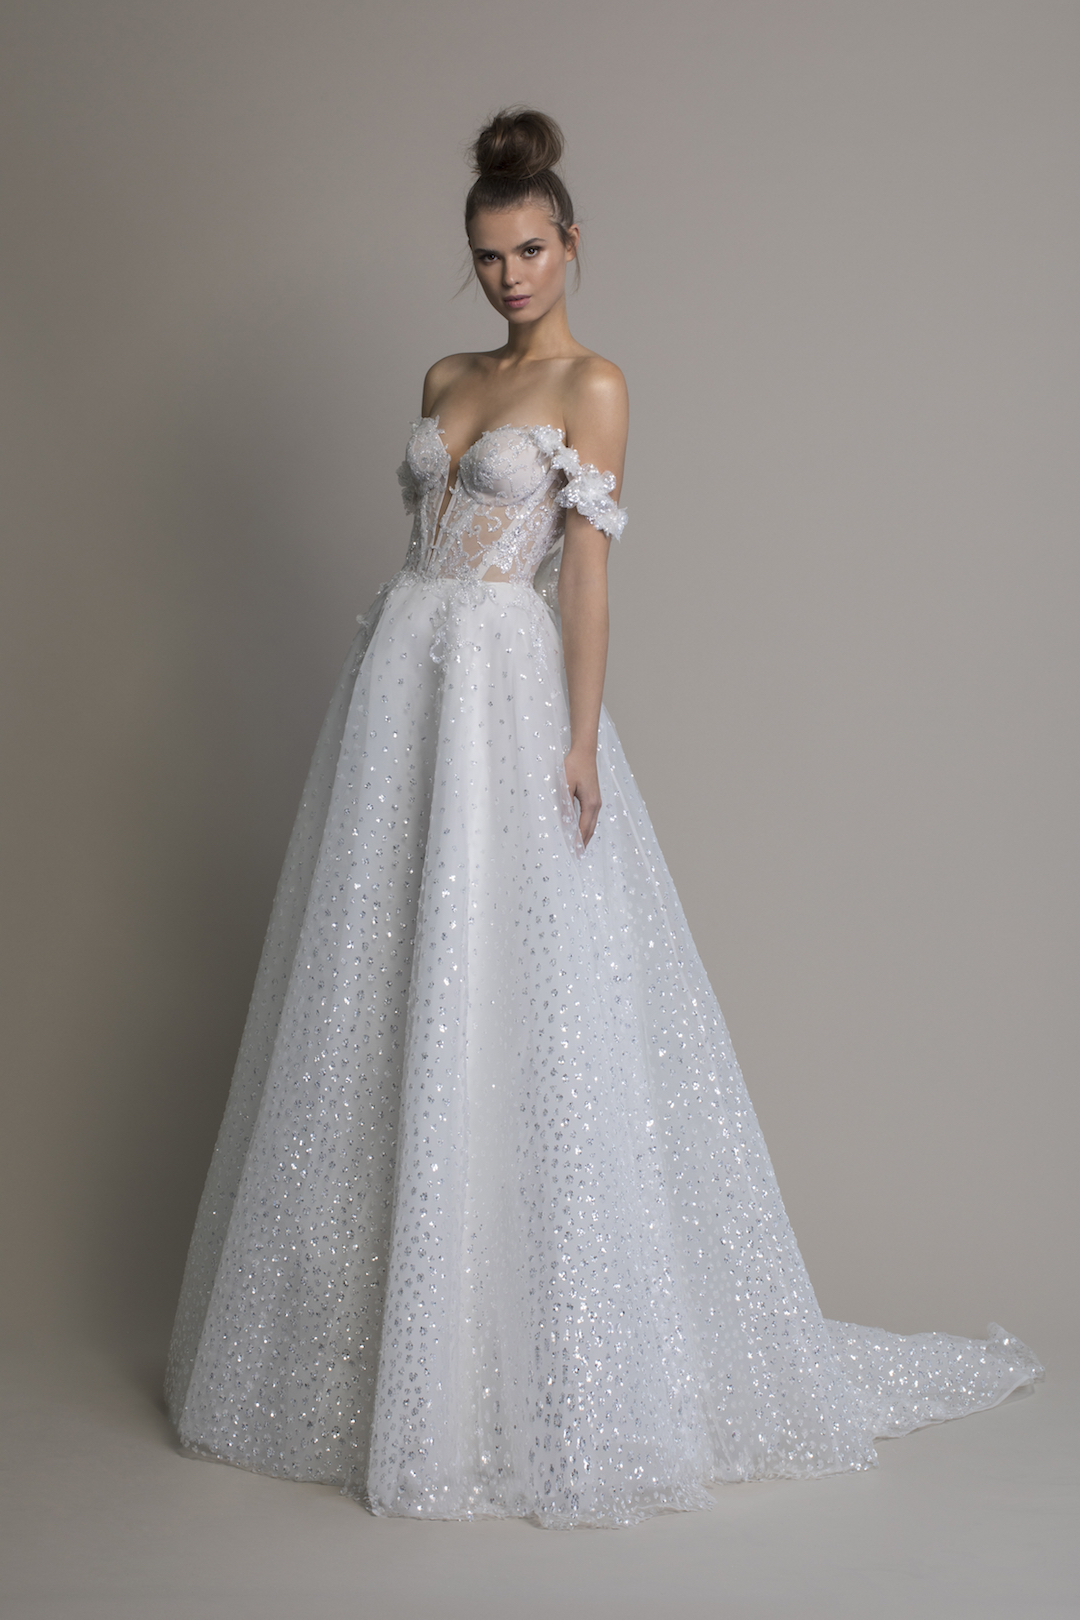 Pnina Tornai's new LOVE 2020 Collection is out! This is style 14765